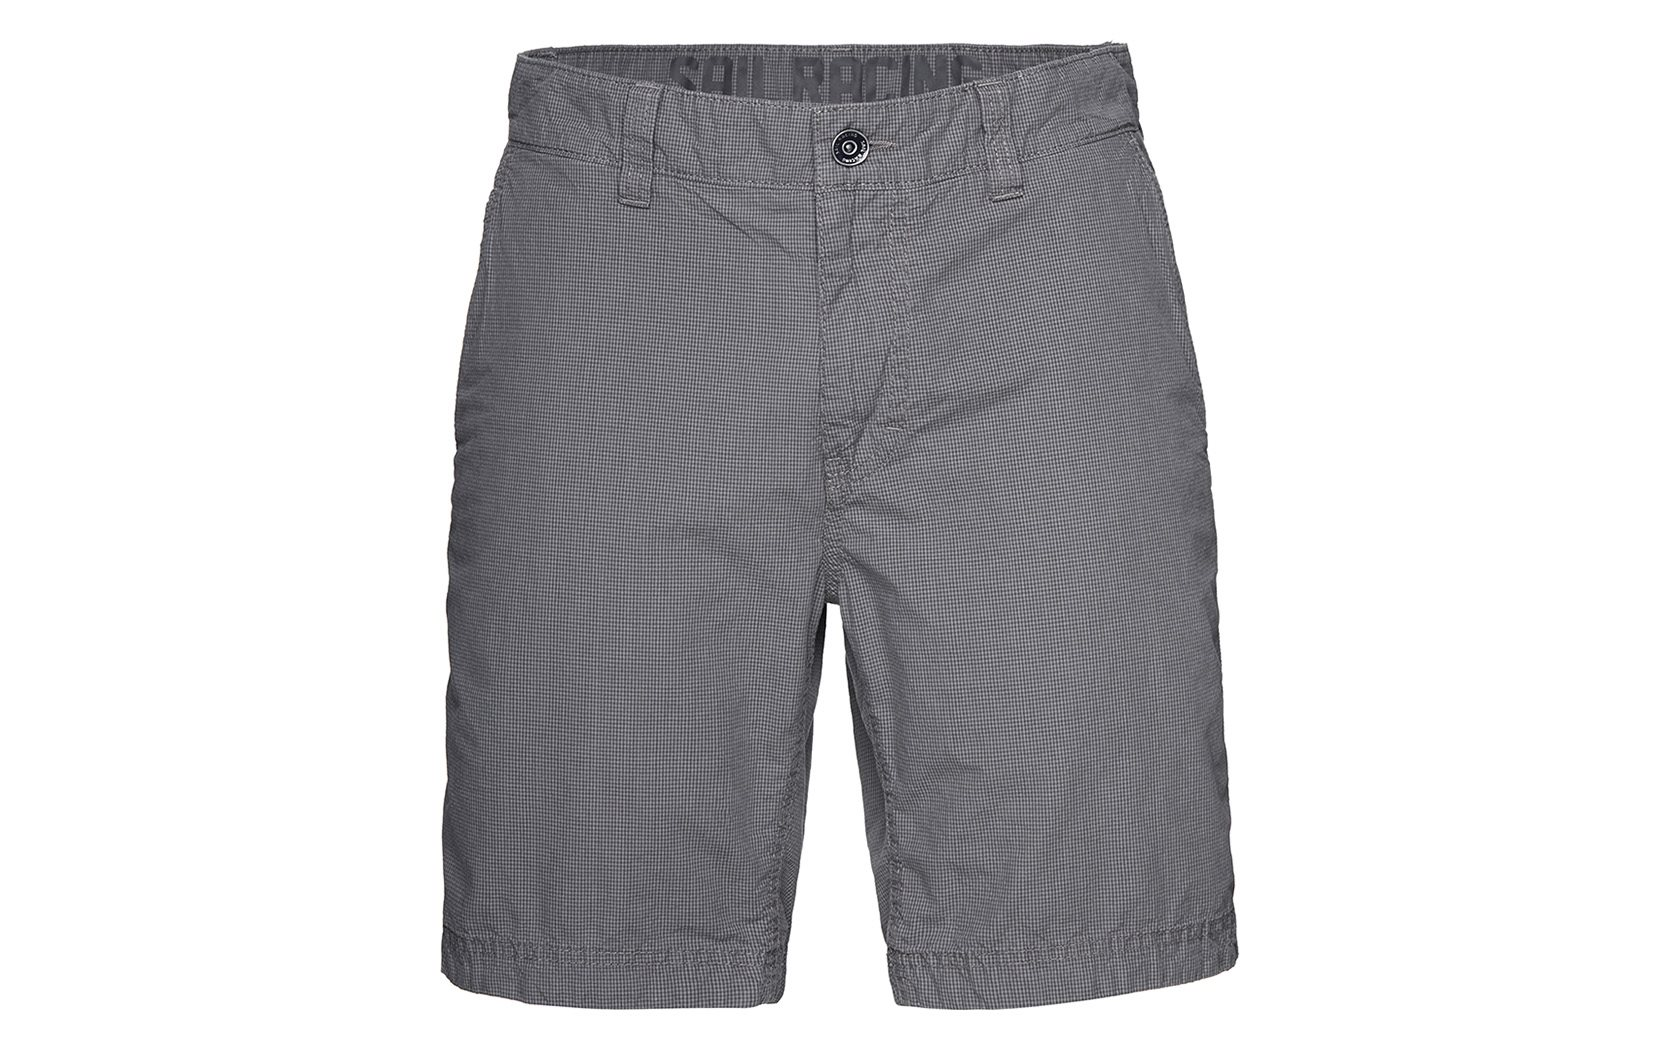 GRINDER CHECK CHINO SHORTS